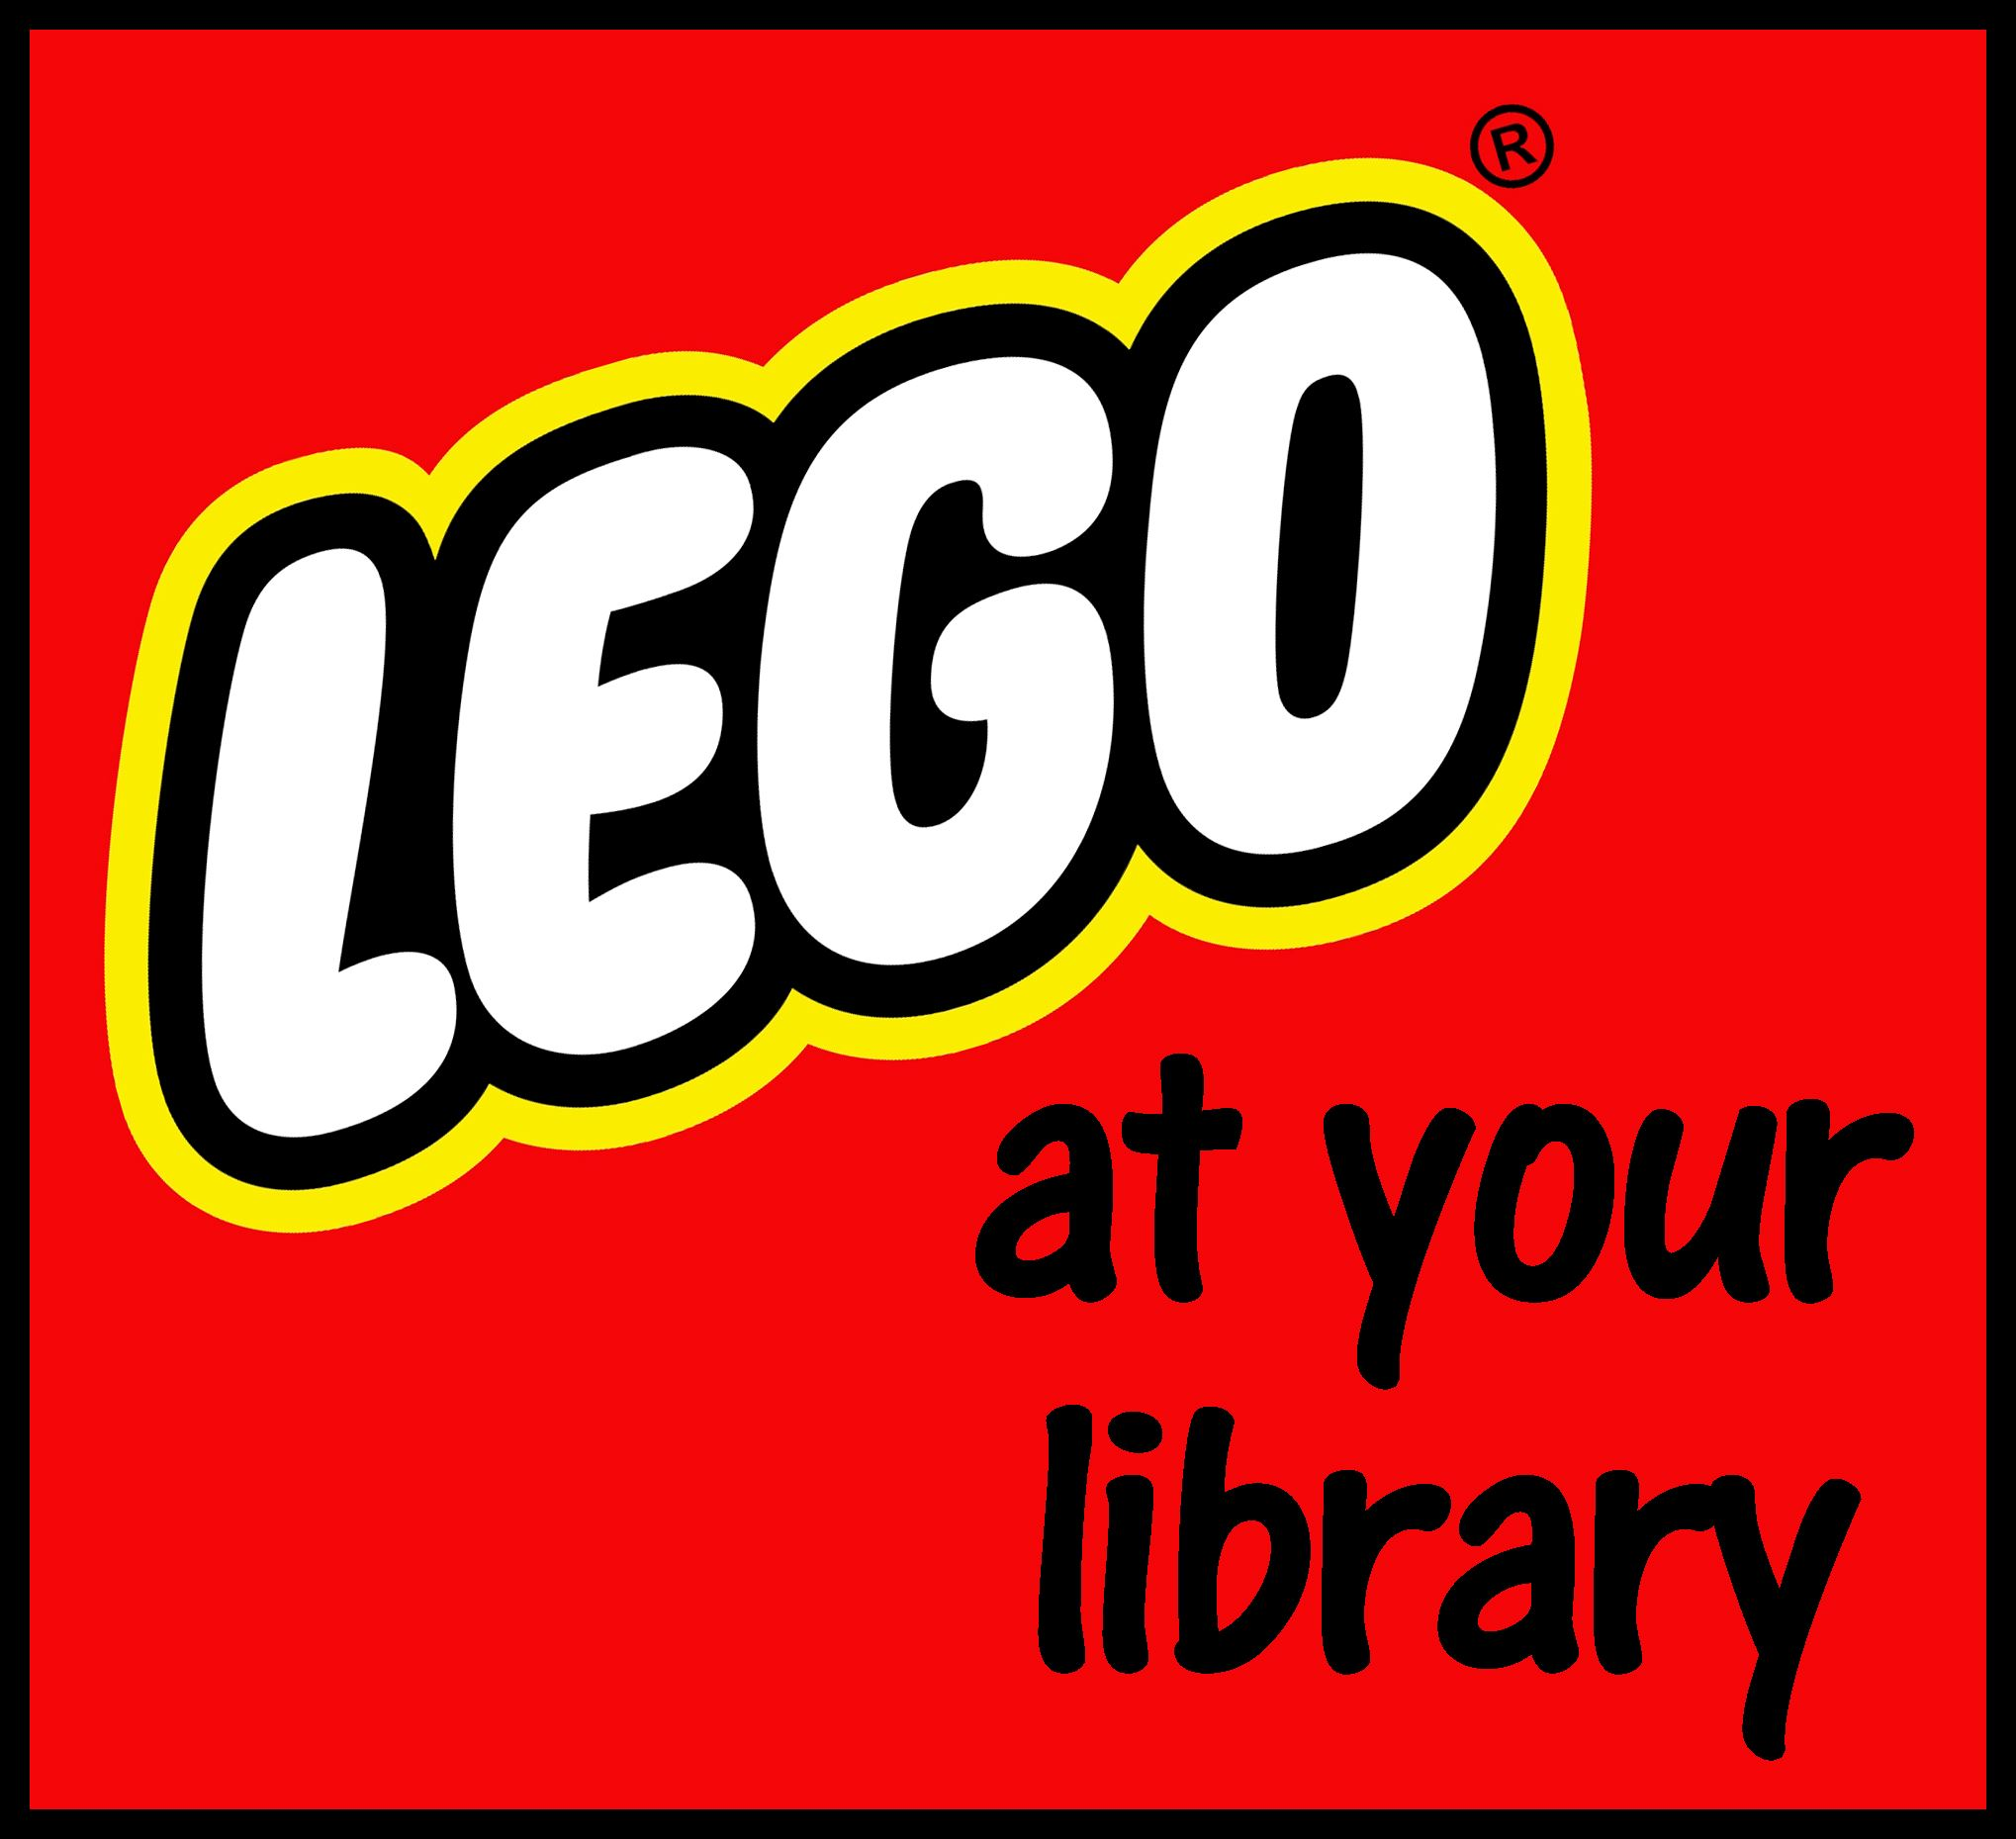 LEGO at your library